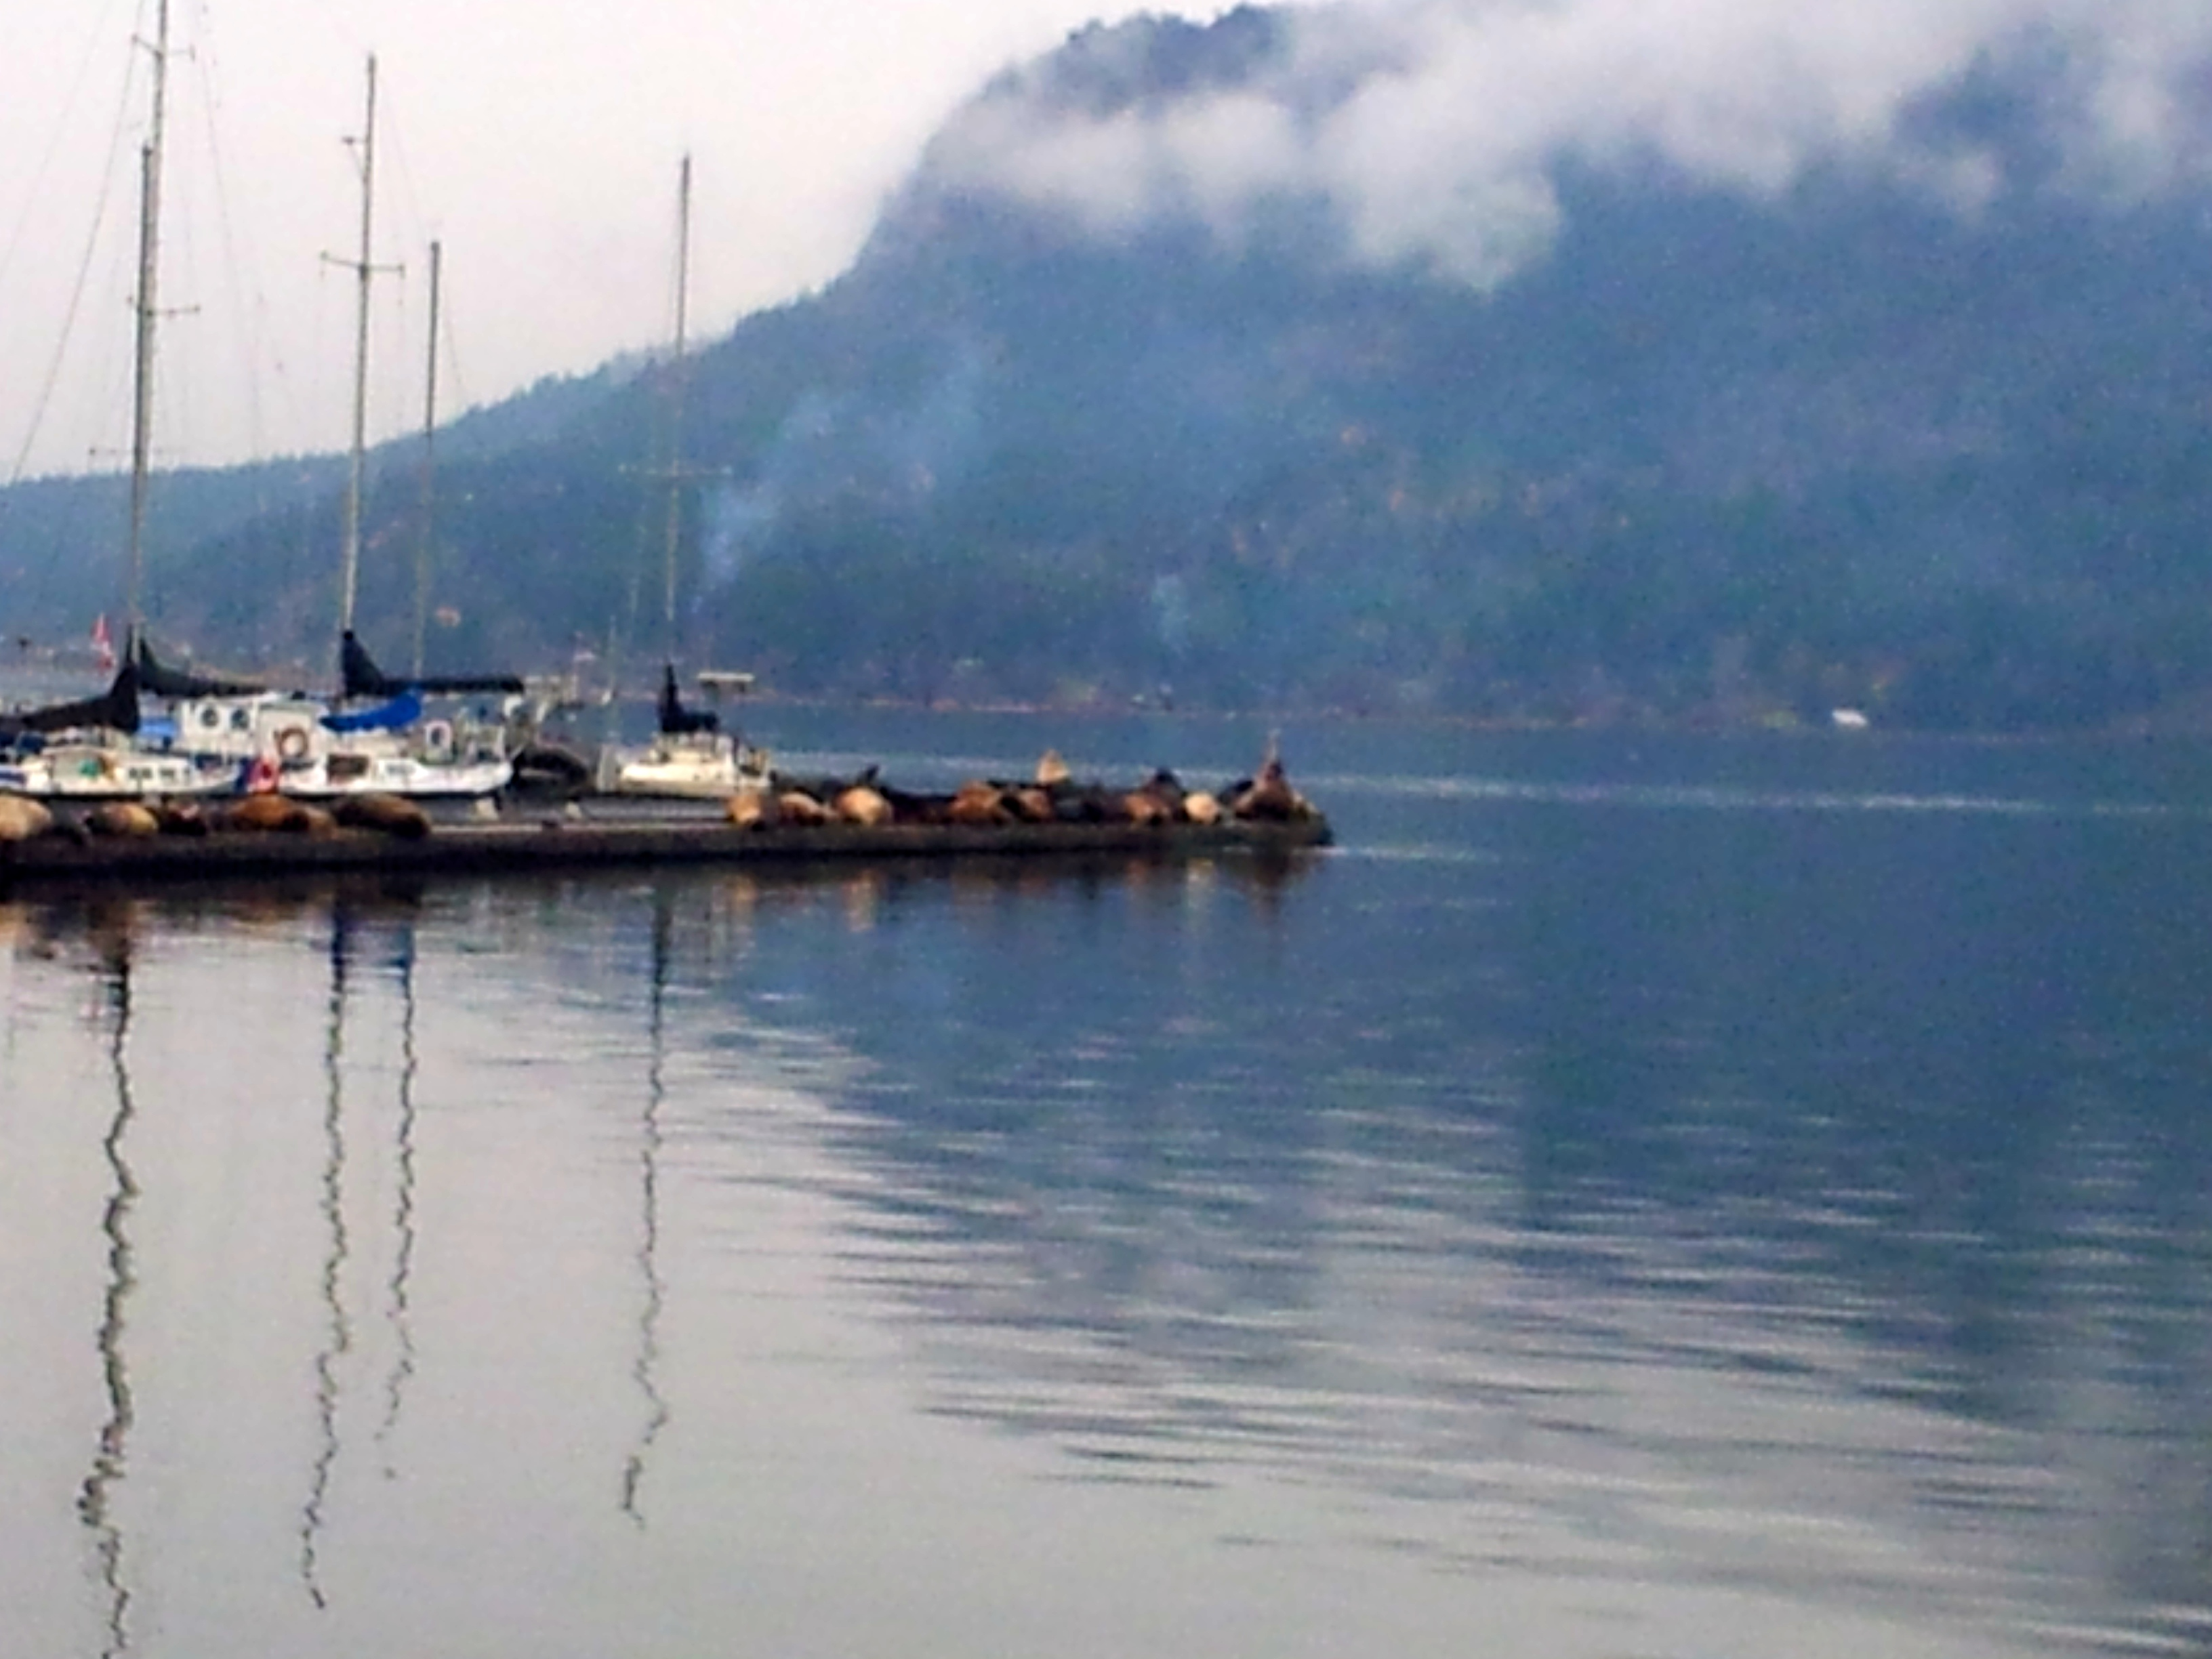 breakpoint-travel-guides-cowichan-bay-vancouver-island-cloudy-day-calm-water-teri-church